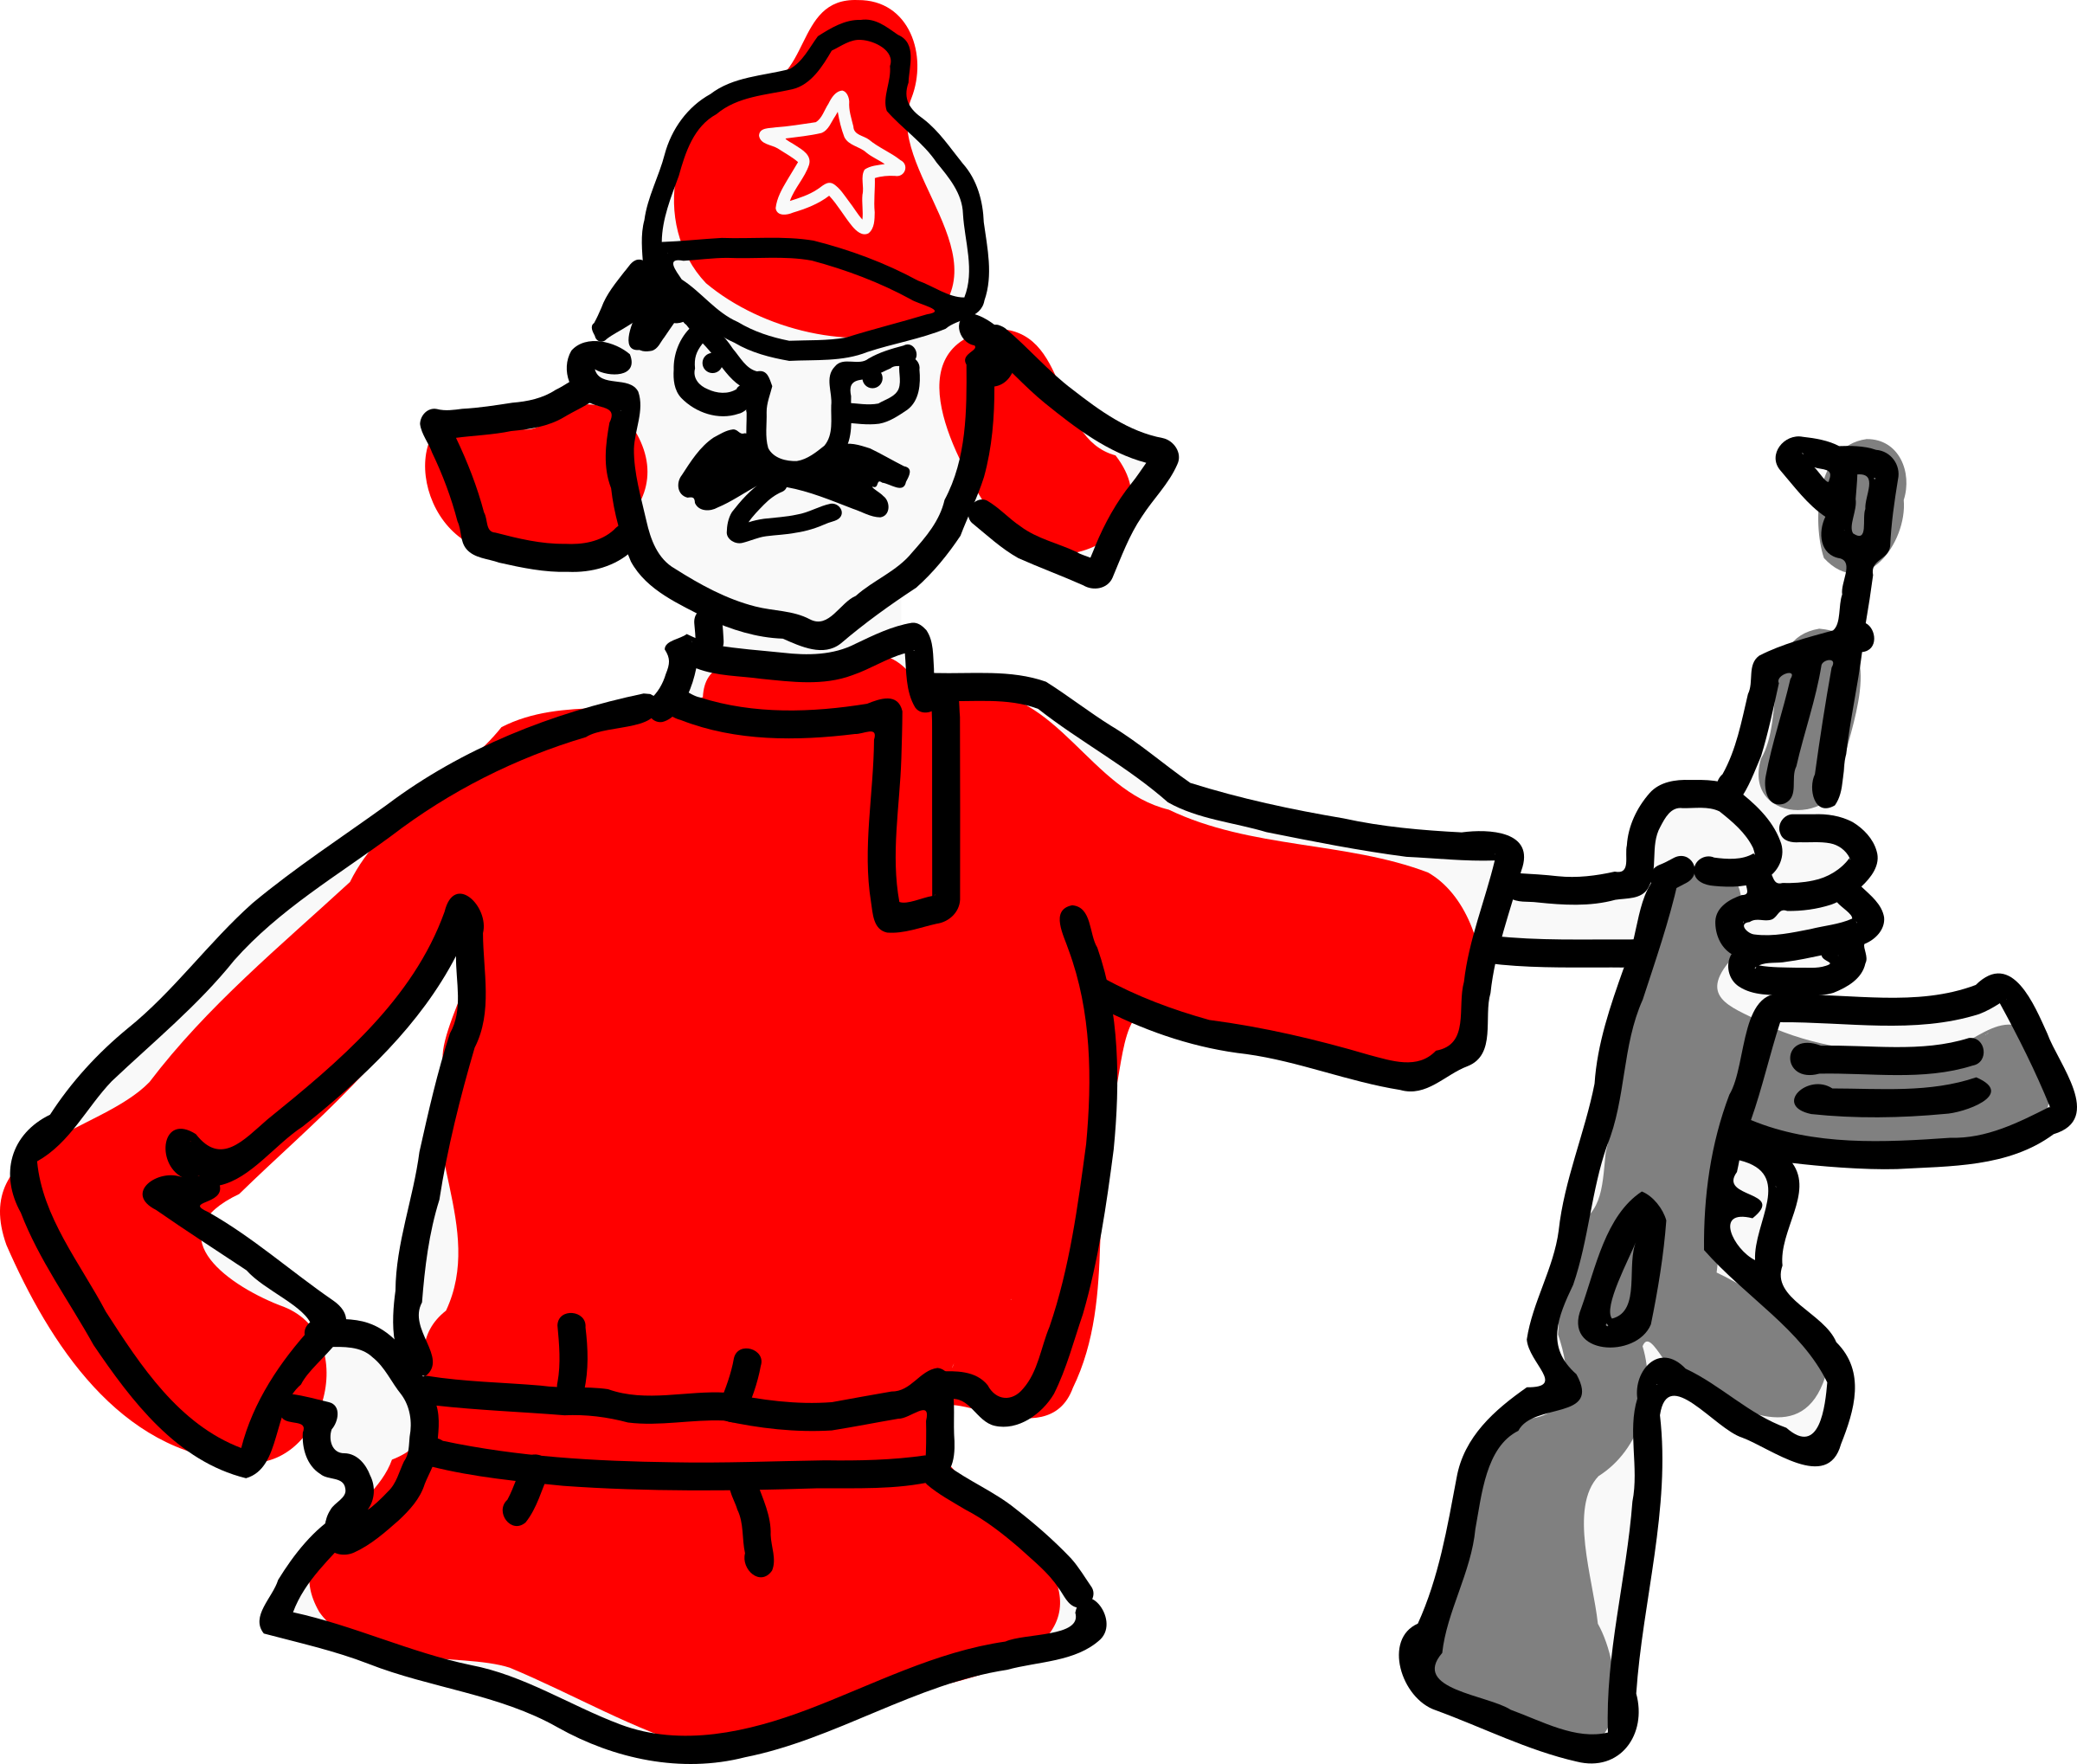 banner stock Red big image png. Clipart army soldier